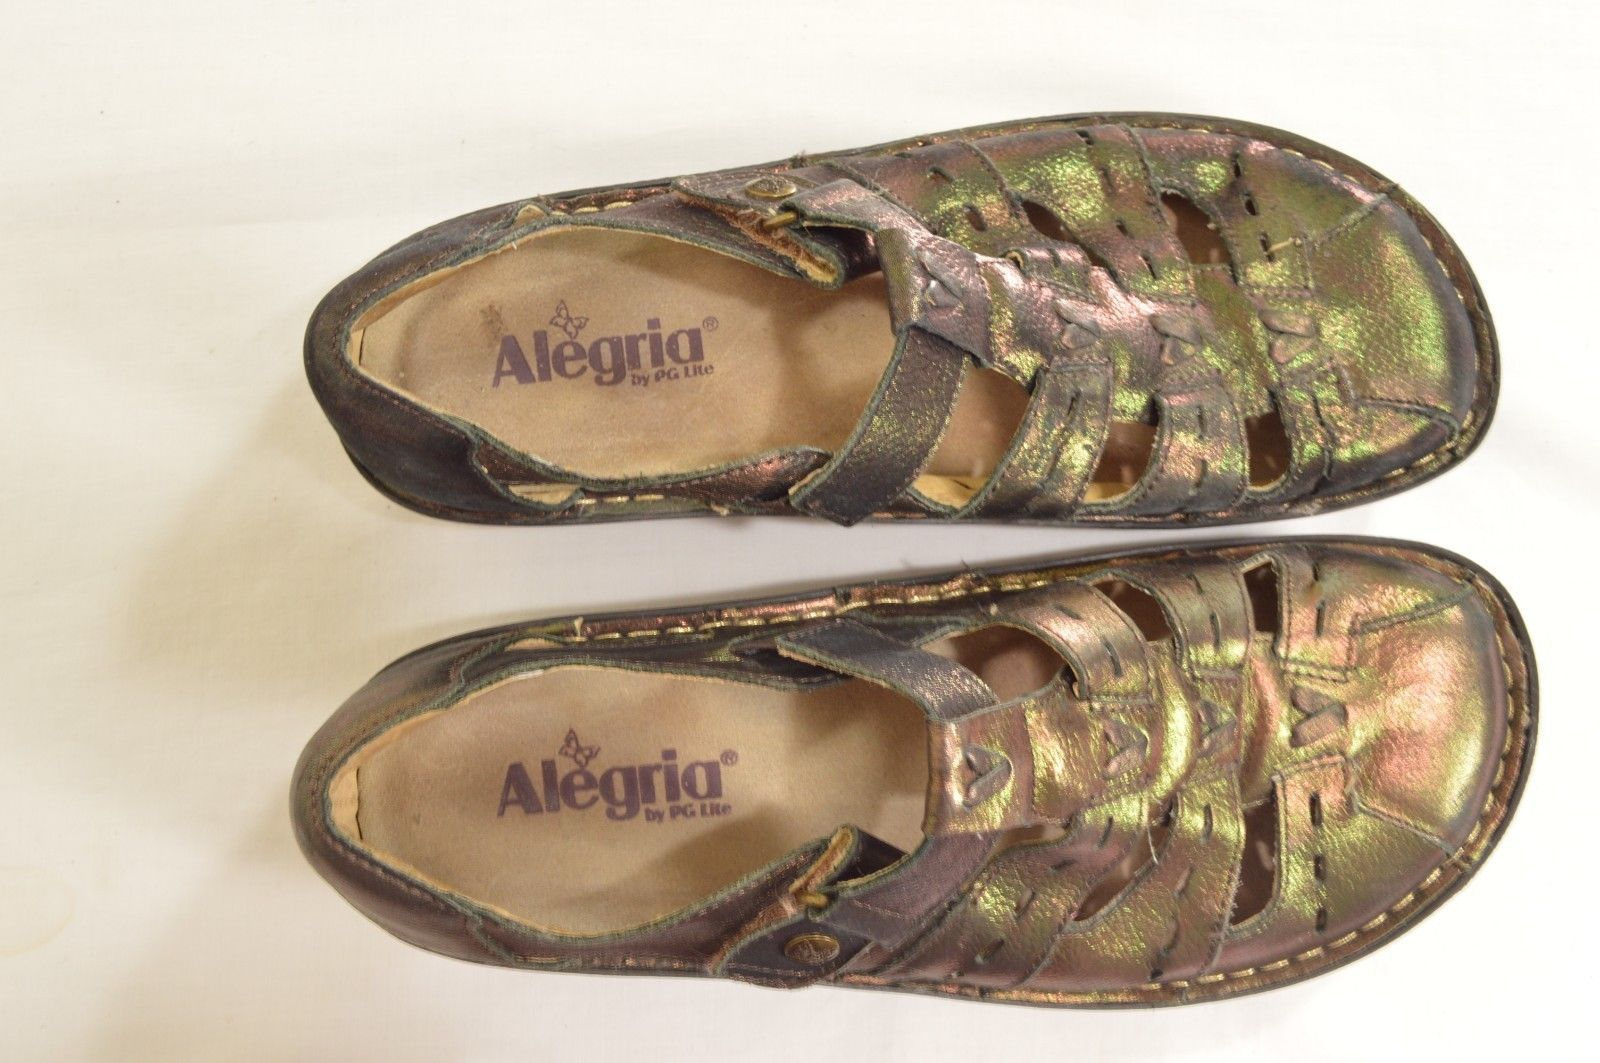 Alegria shoes SZ 40 US 9.5 bronze leather Mary Jane shiny PES-201